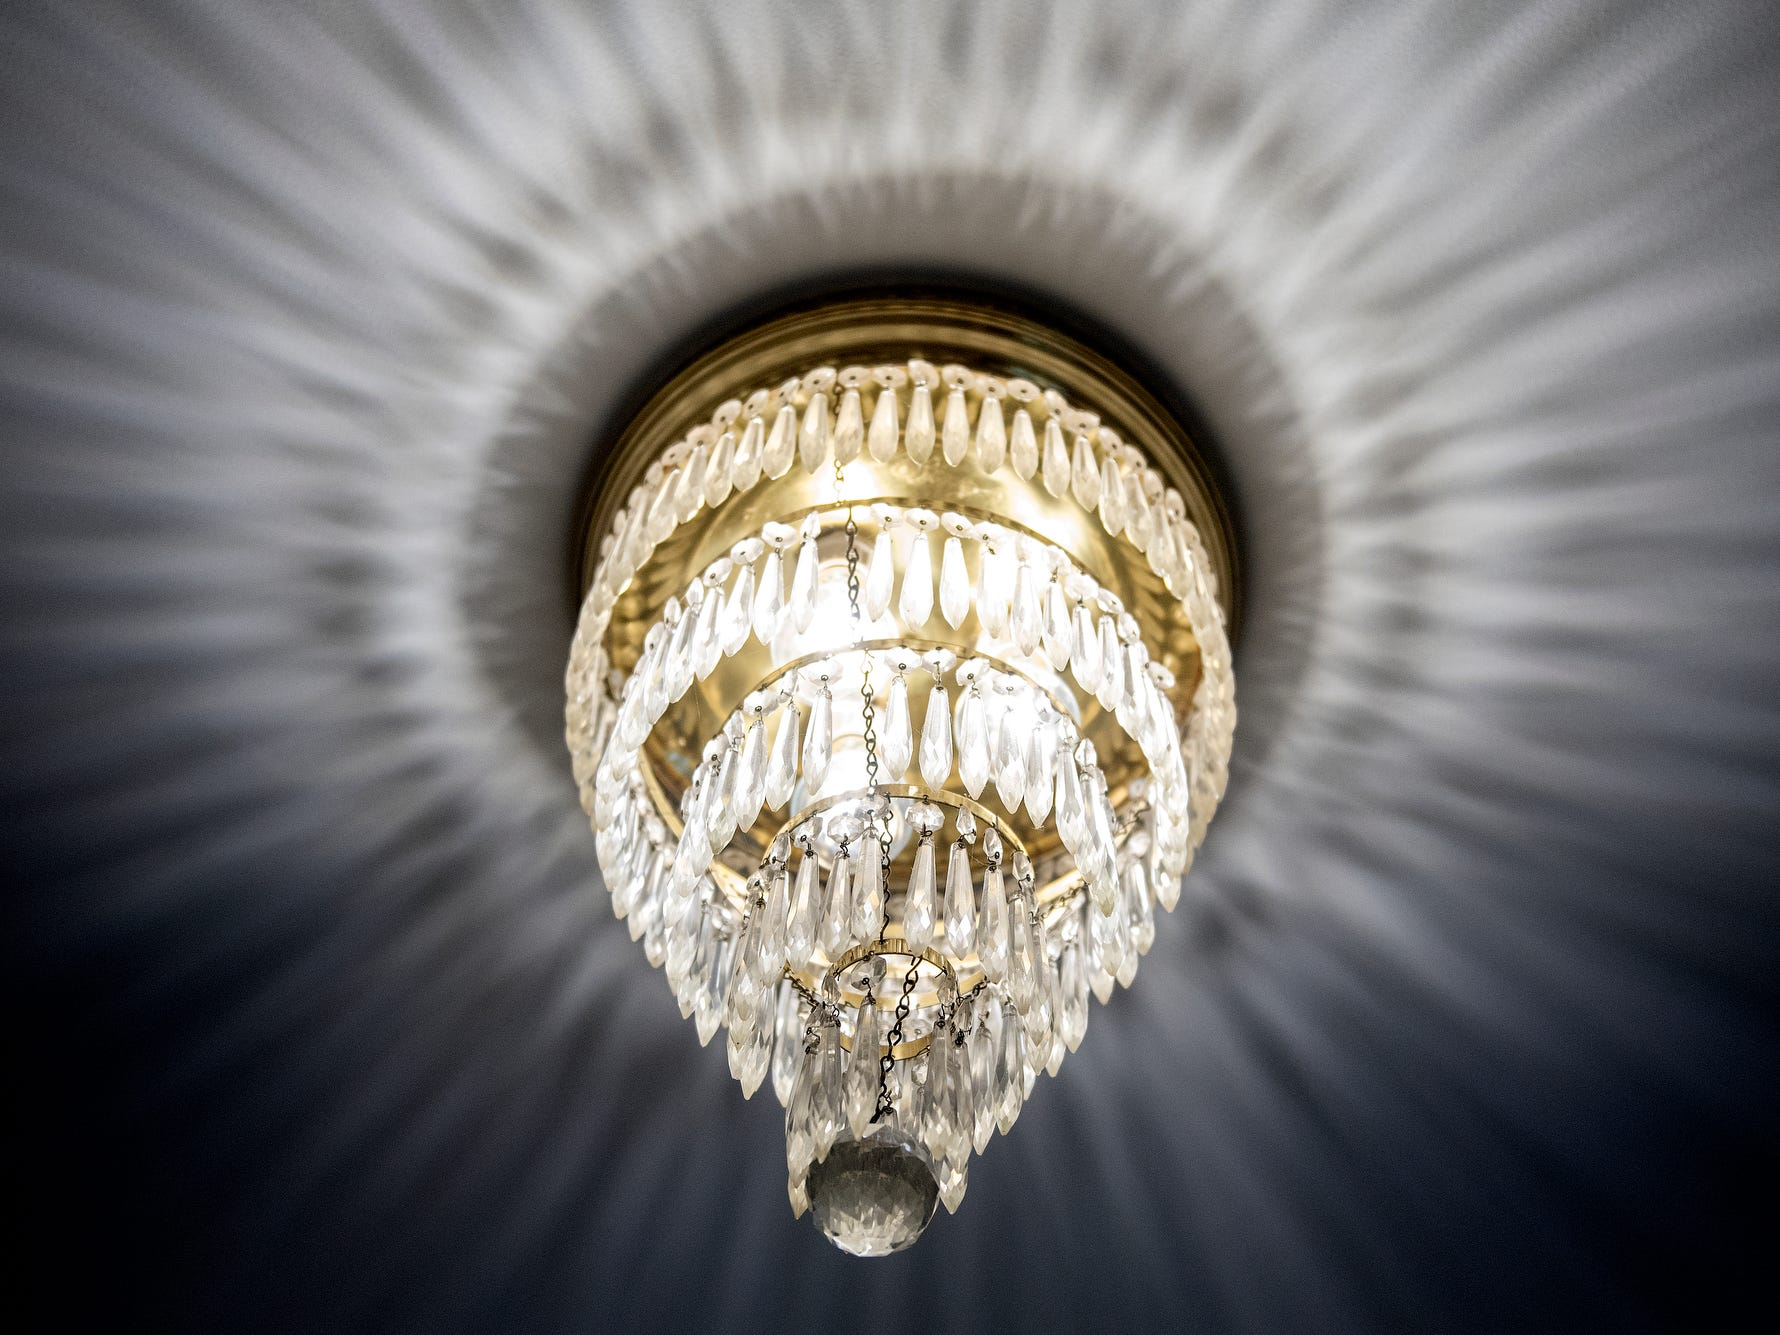 A light fixture casts an interesting reflection on the ceiling at the Purchases' Moores River Drive home on Thursday, Sept. 5, 2018, Lansing. The home is one of five homes that will be featured on the Sept. 16 Lansing Area Historical Home Tour.